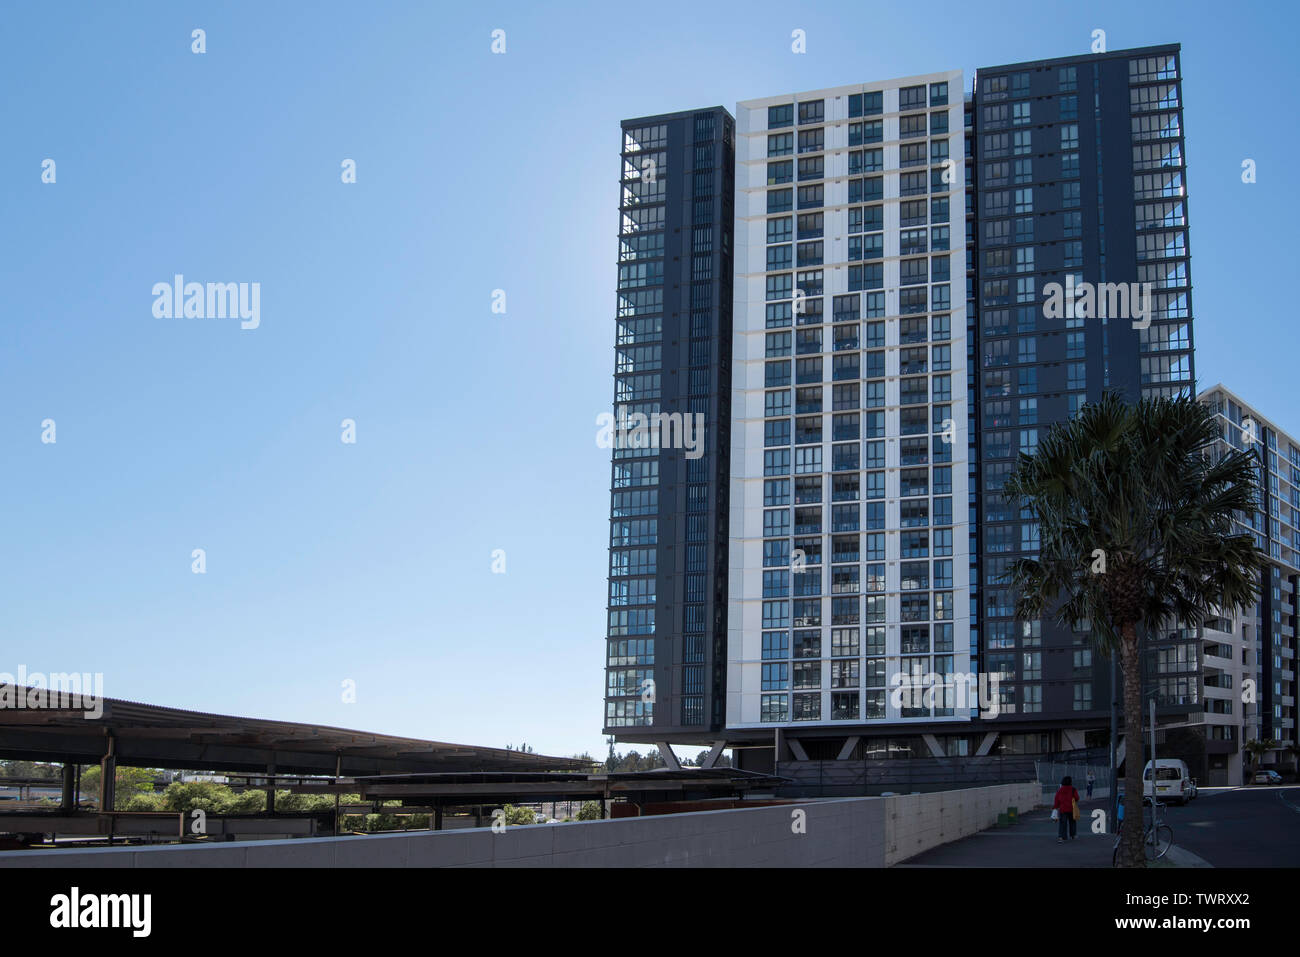 A high rise apartment building built directly over a railway line in the Sydney suburb of Wolli Creek, Australia Stock Photo